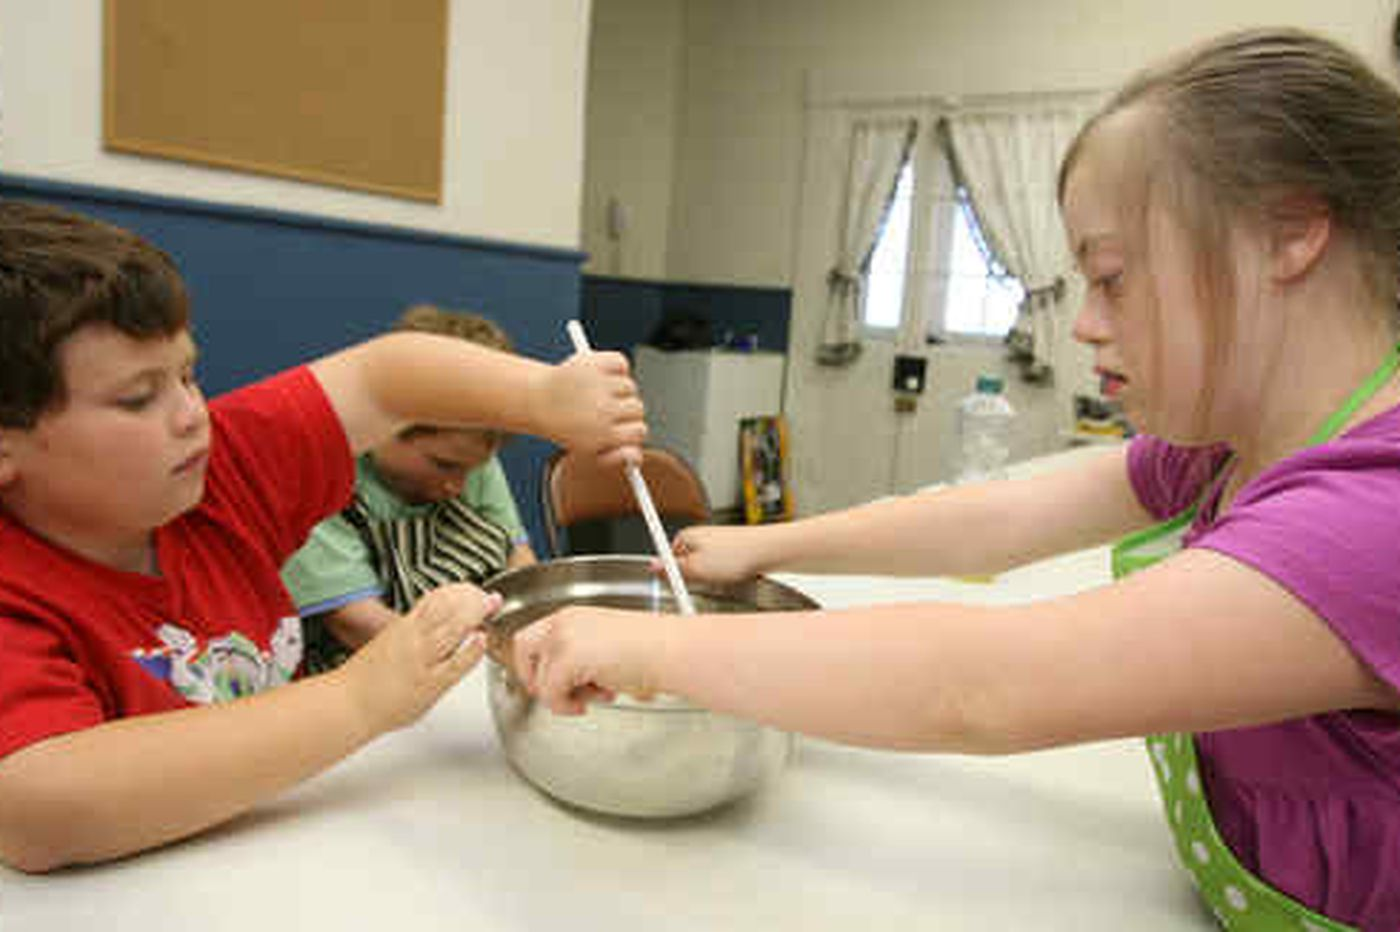 Cooking club helps autistic children build life skills